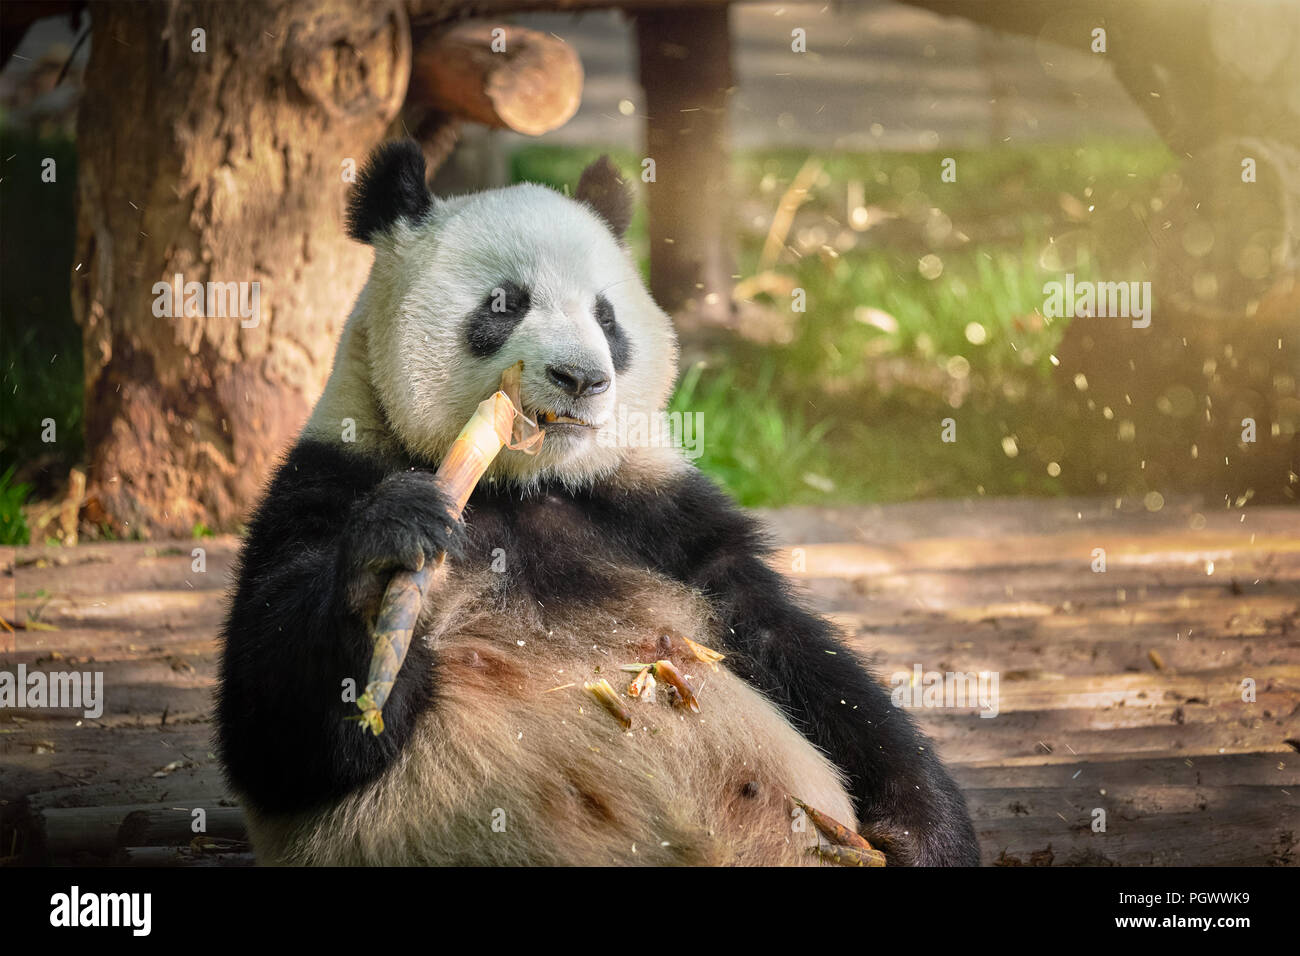 Ours panda géant en Chine Photo Stock